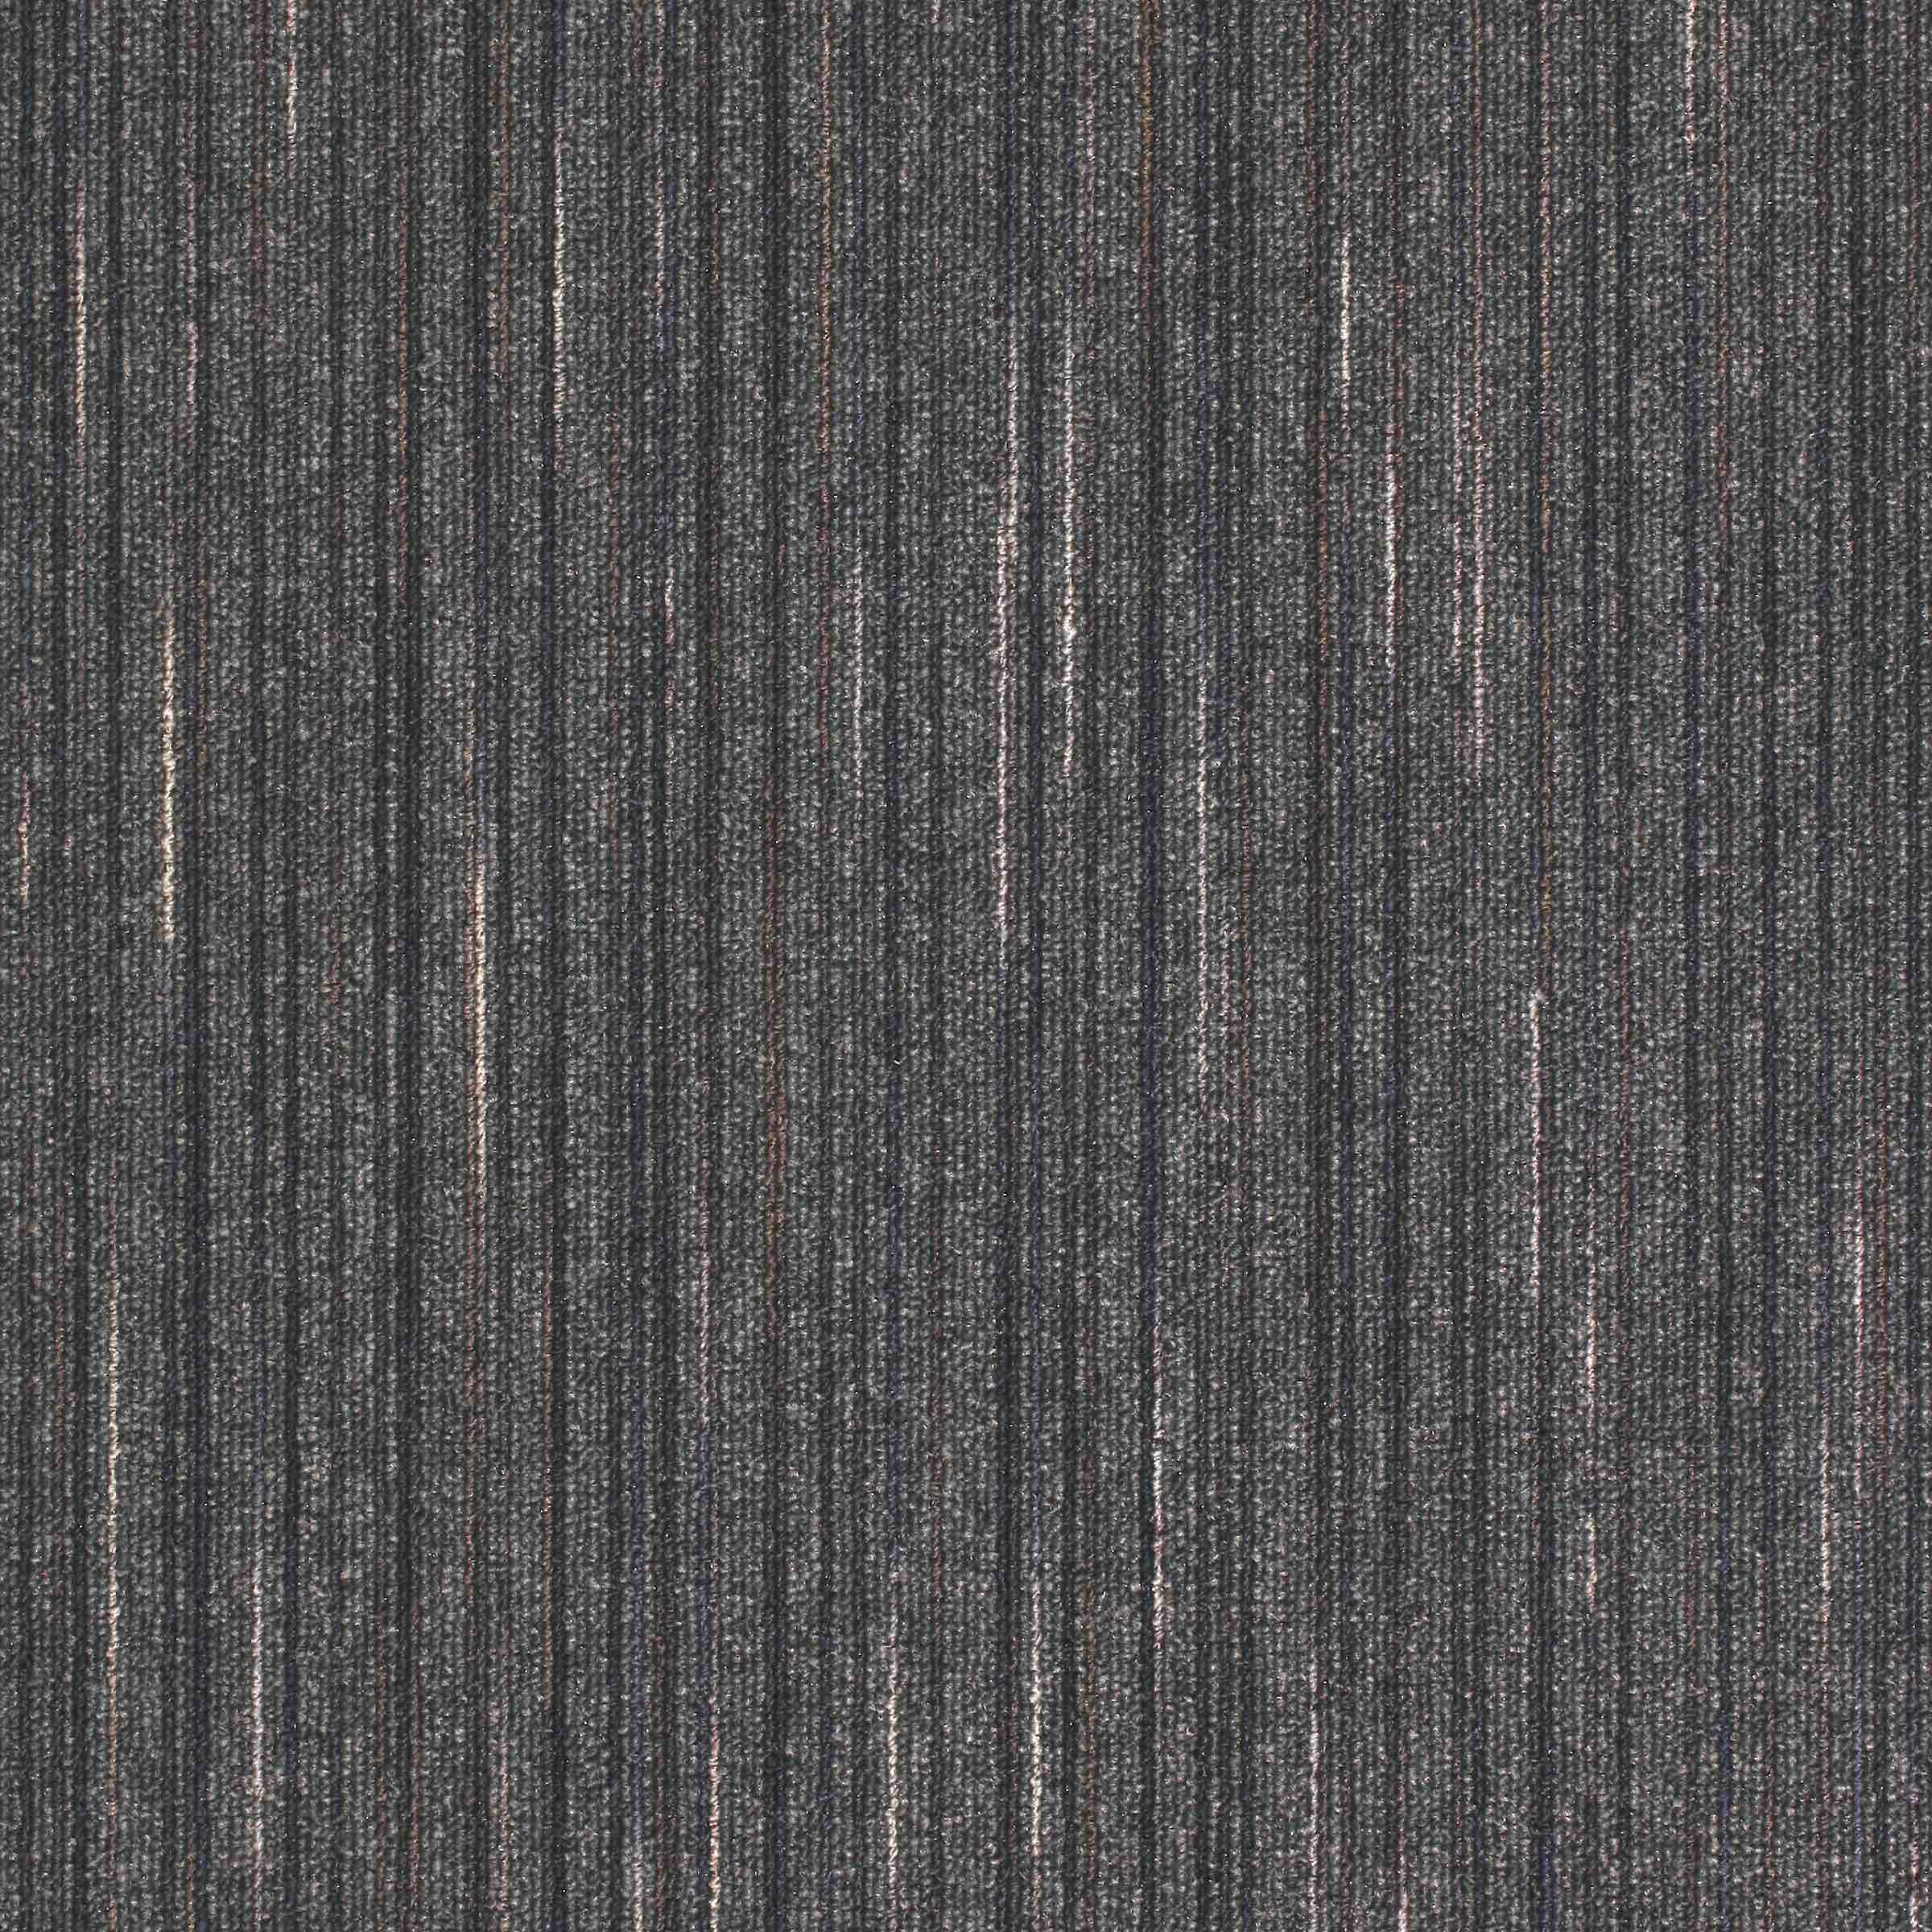 Strobe | Plasma, 2619 | Paragon Carpet Tiles | Commercial Carpet Tiles